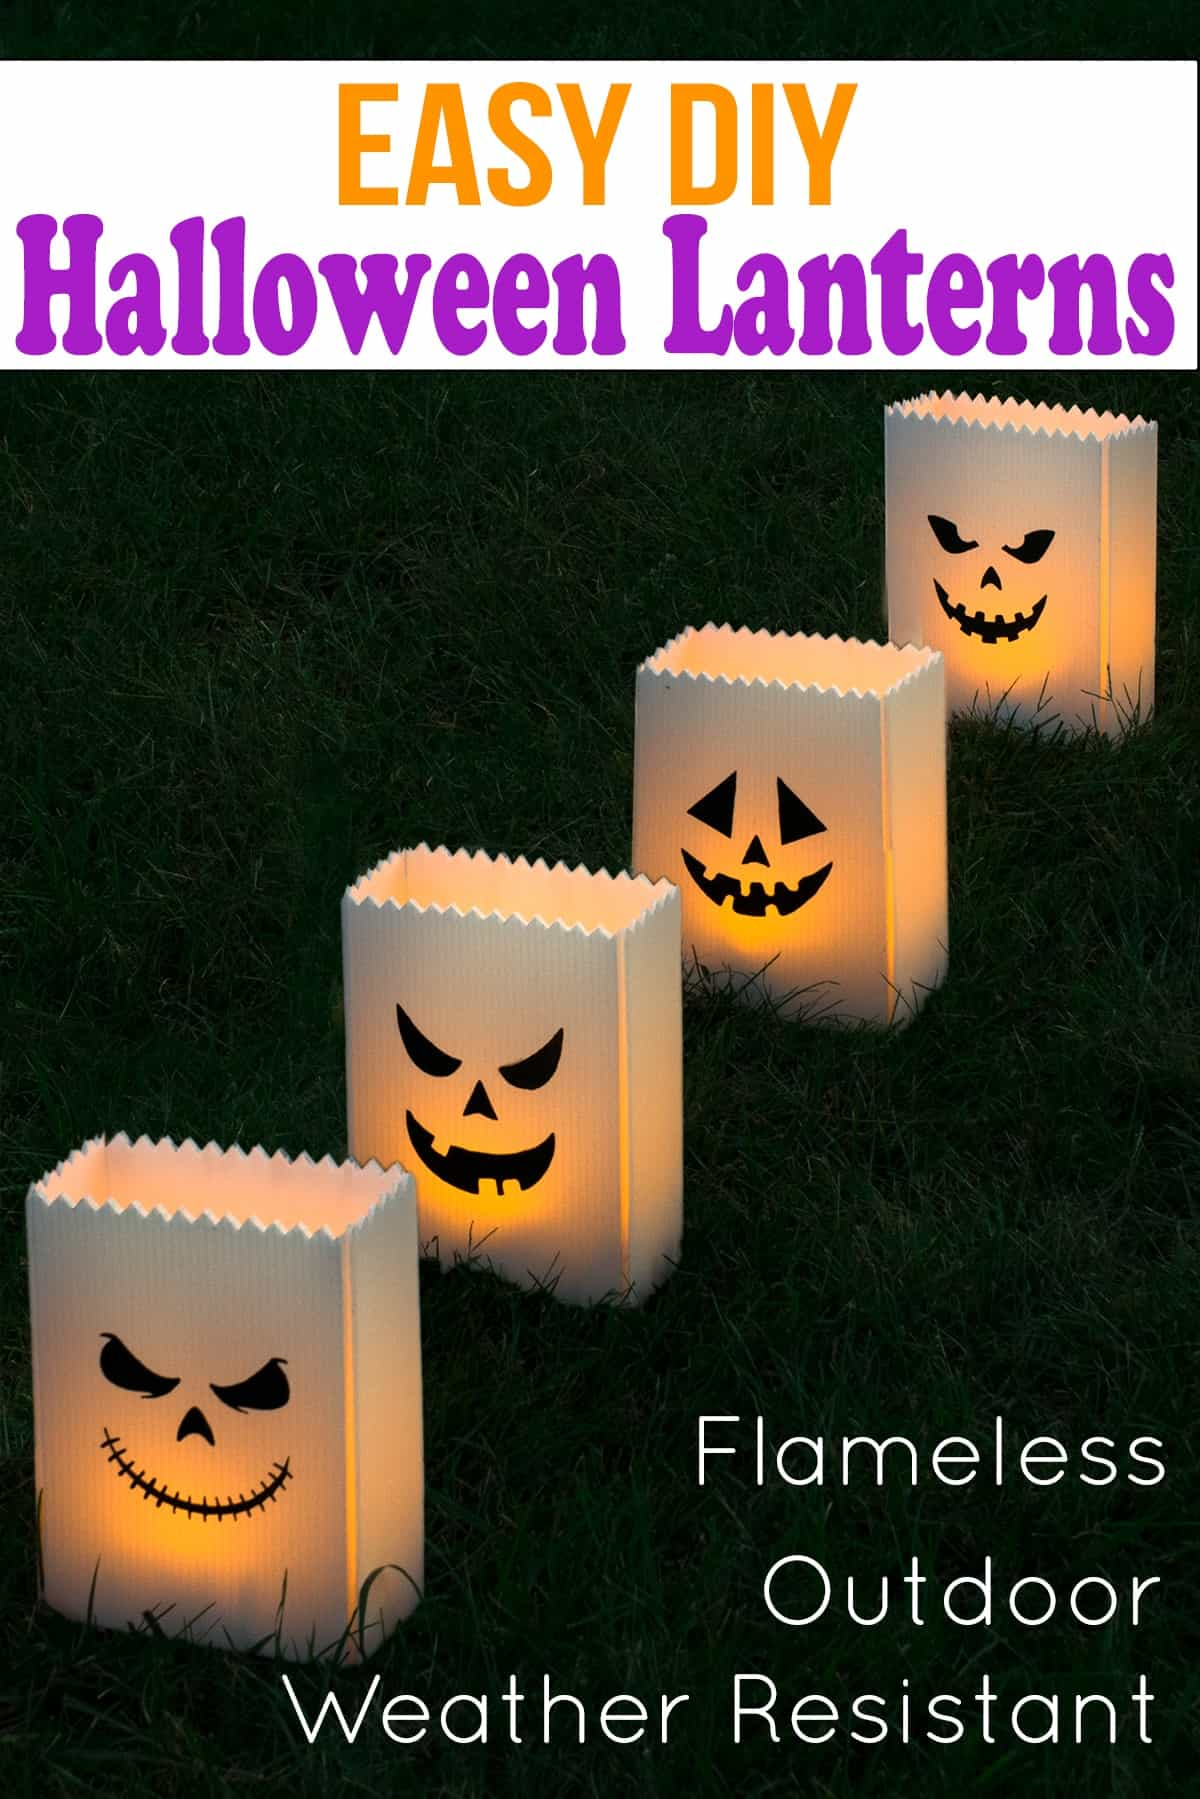 Flameless outdoor luminaries with jack-o-lantern faces in grass with title.